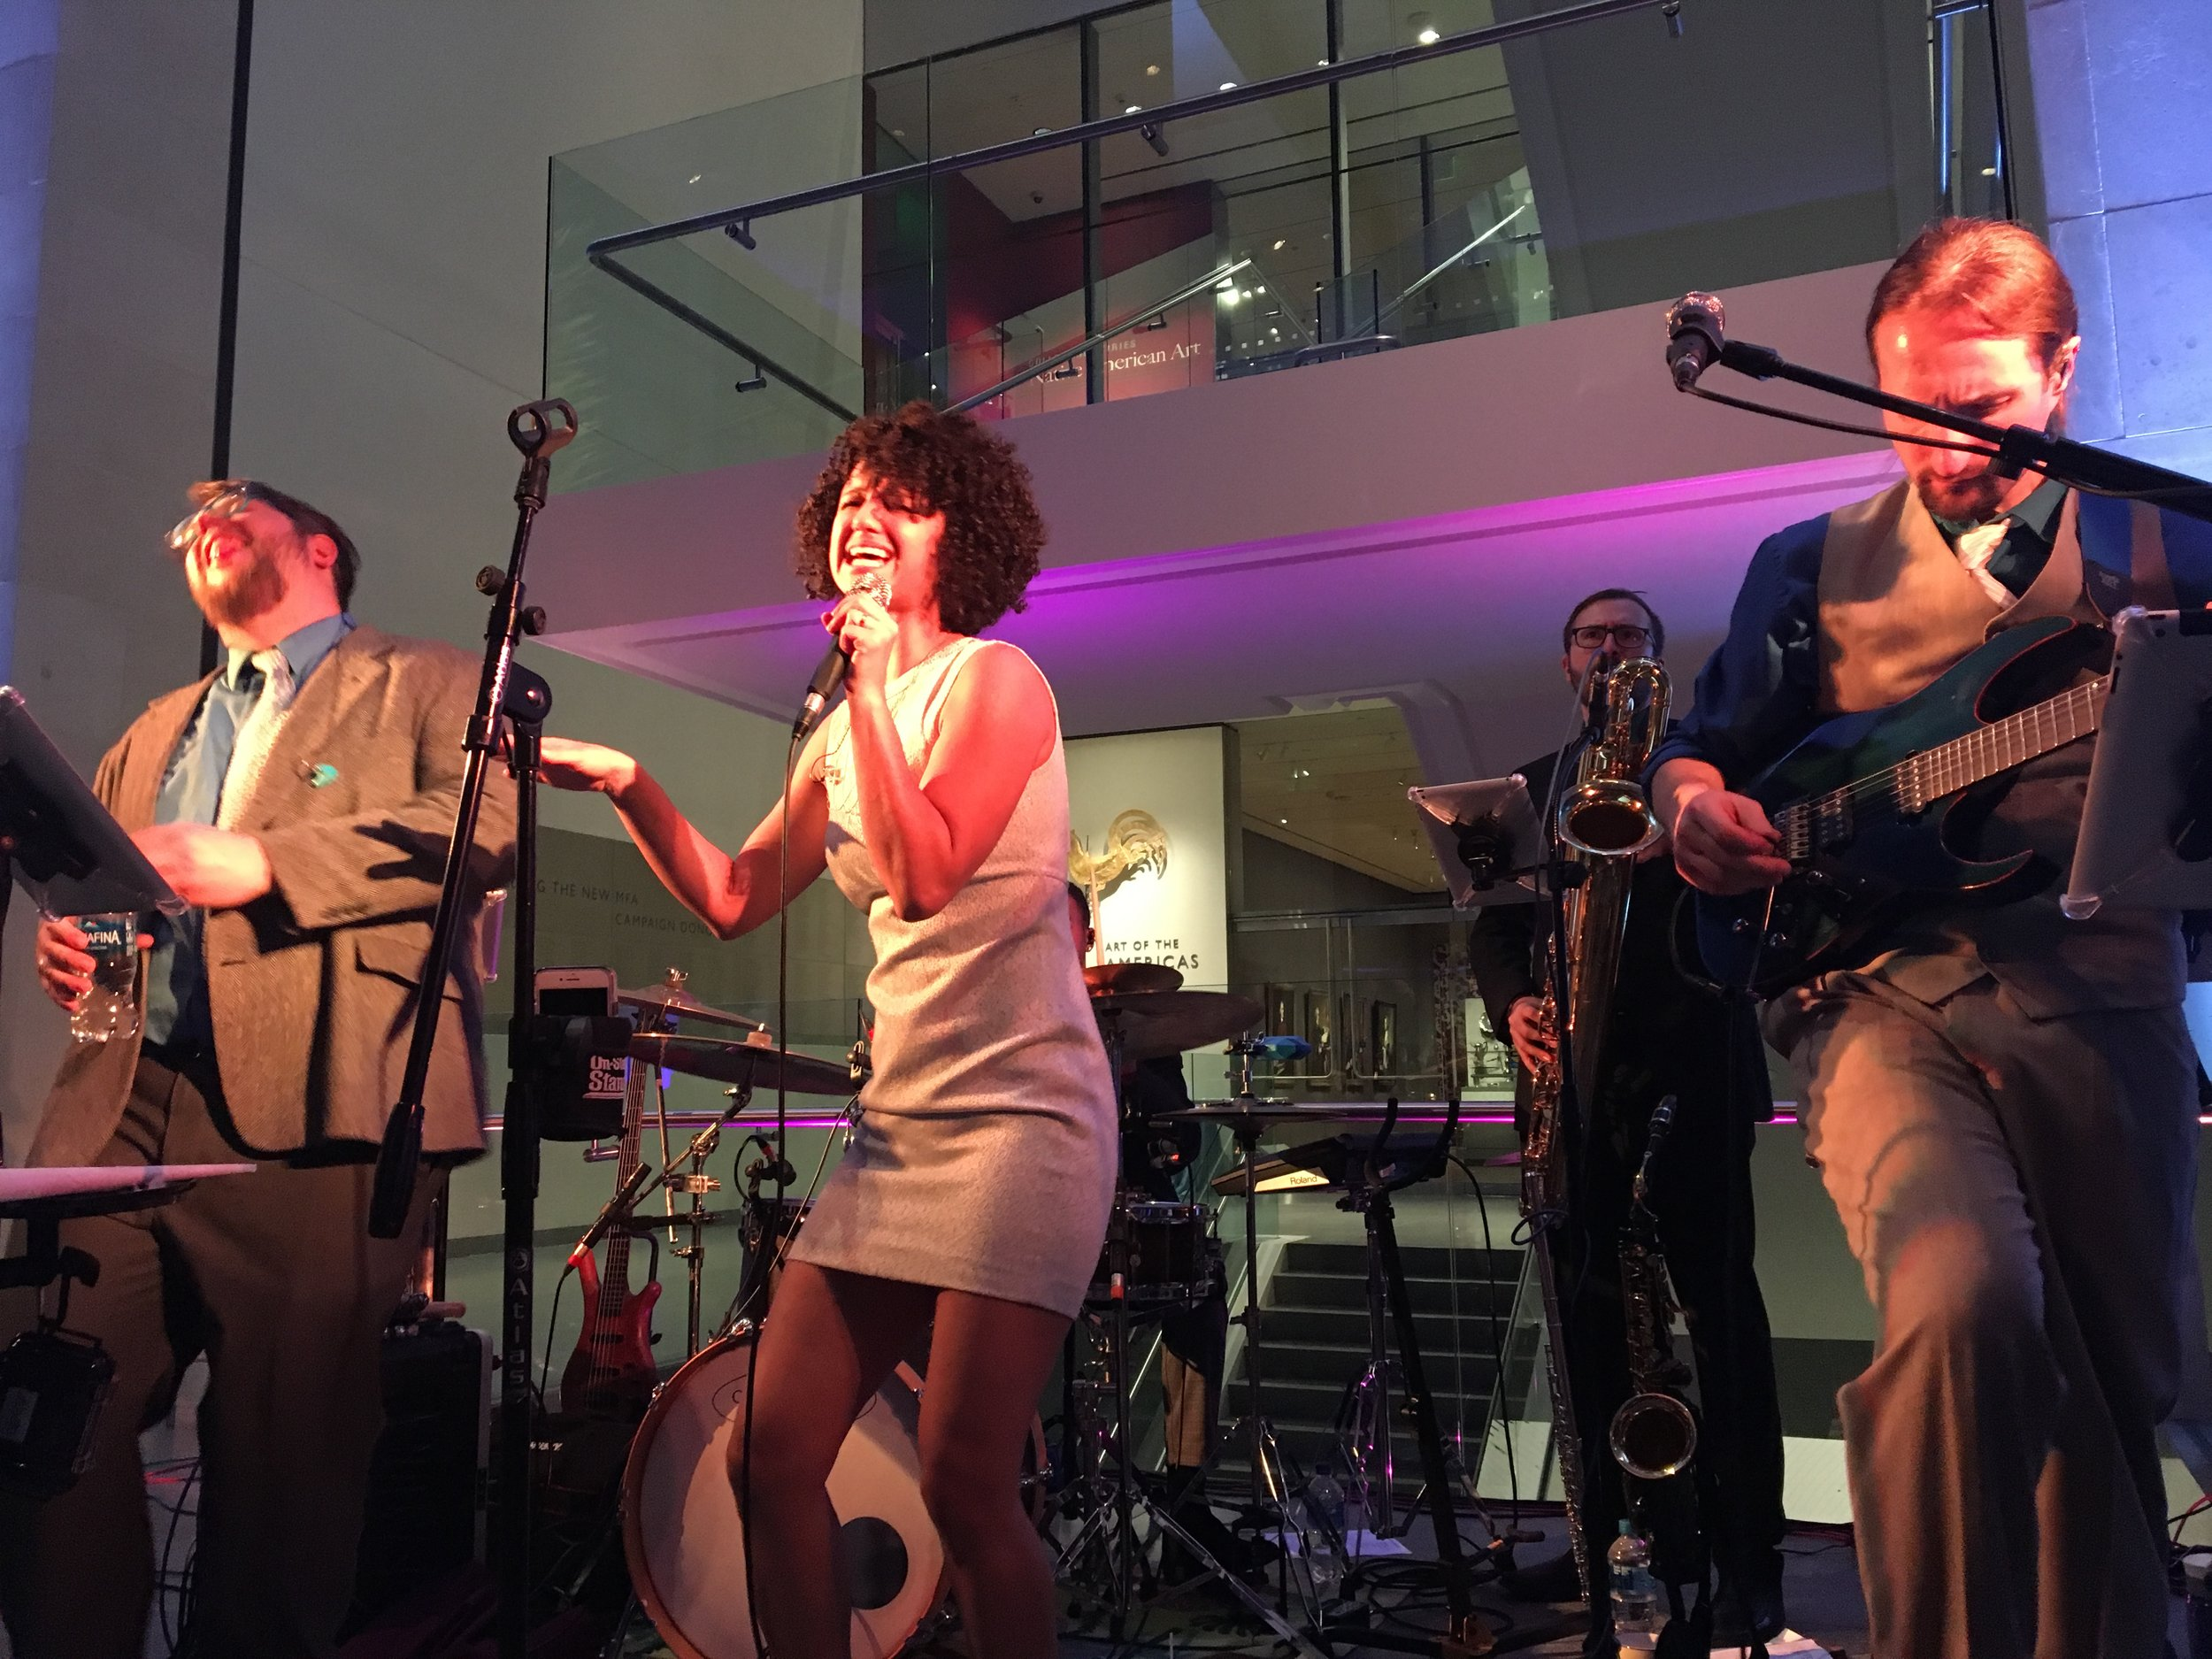 One of our favorite partner bands brought the energy to Boston Consulting Group's 2018 holiday party at the MFA